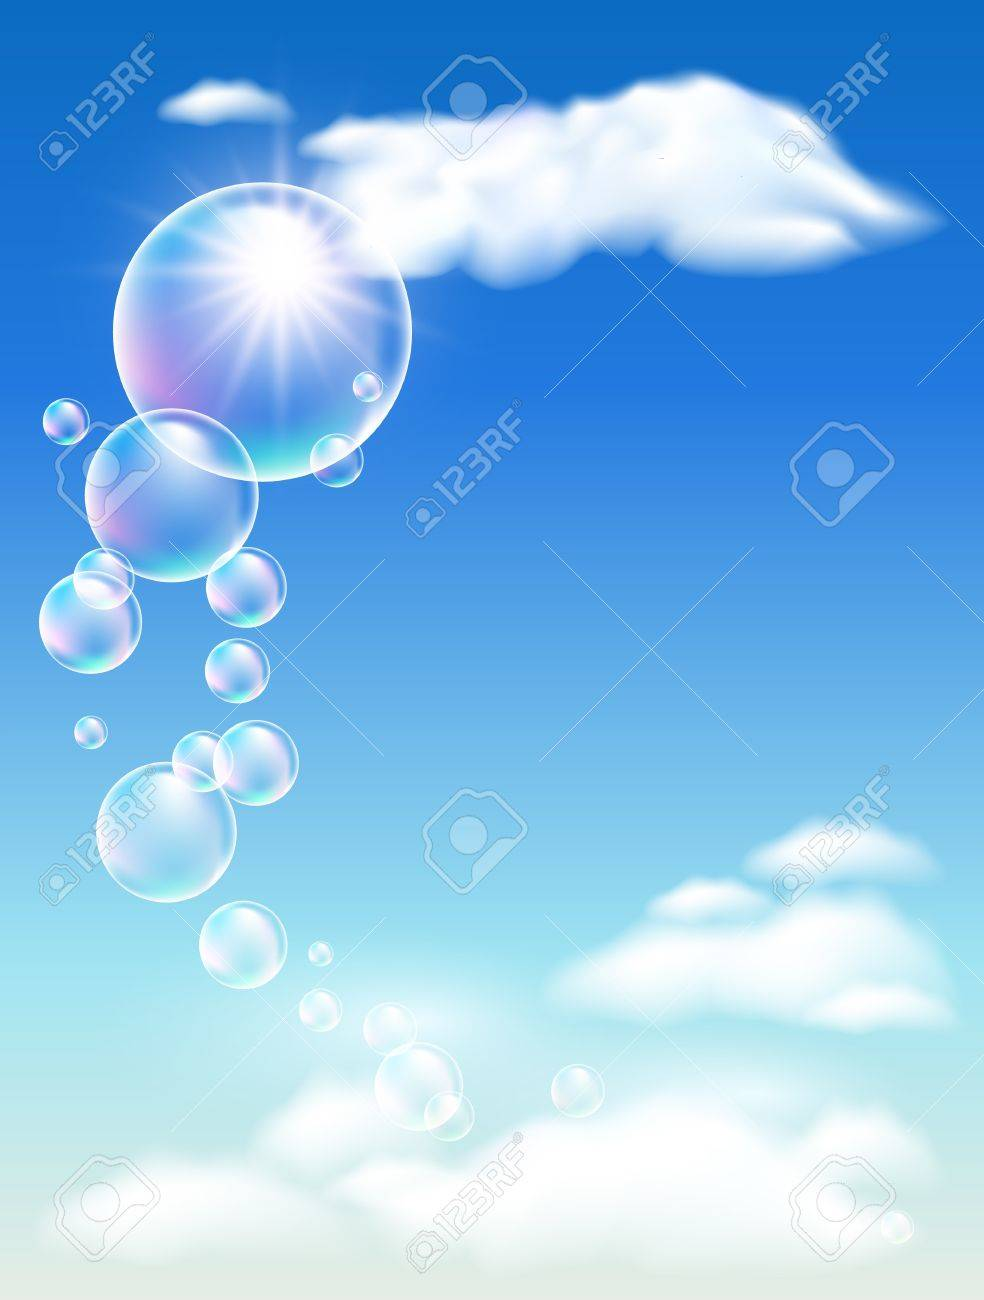 Blue sky, clouds and bubbles - 13623236